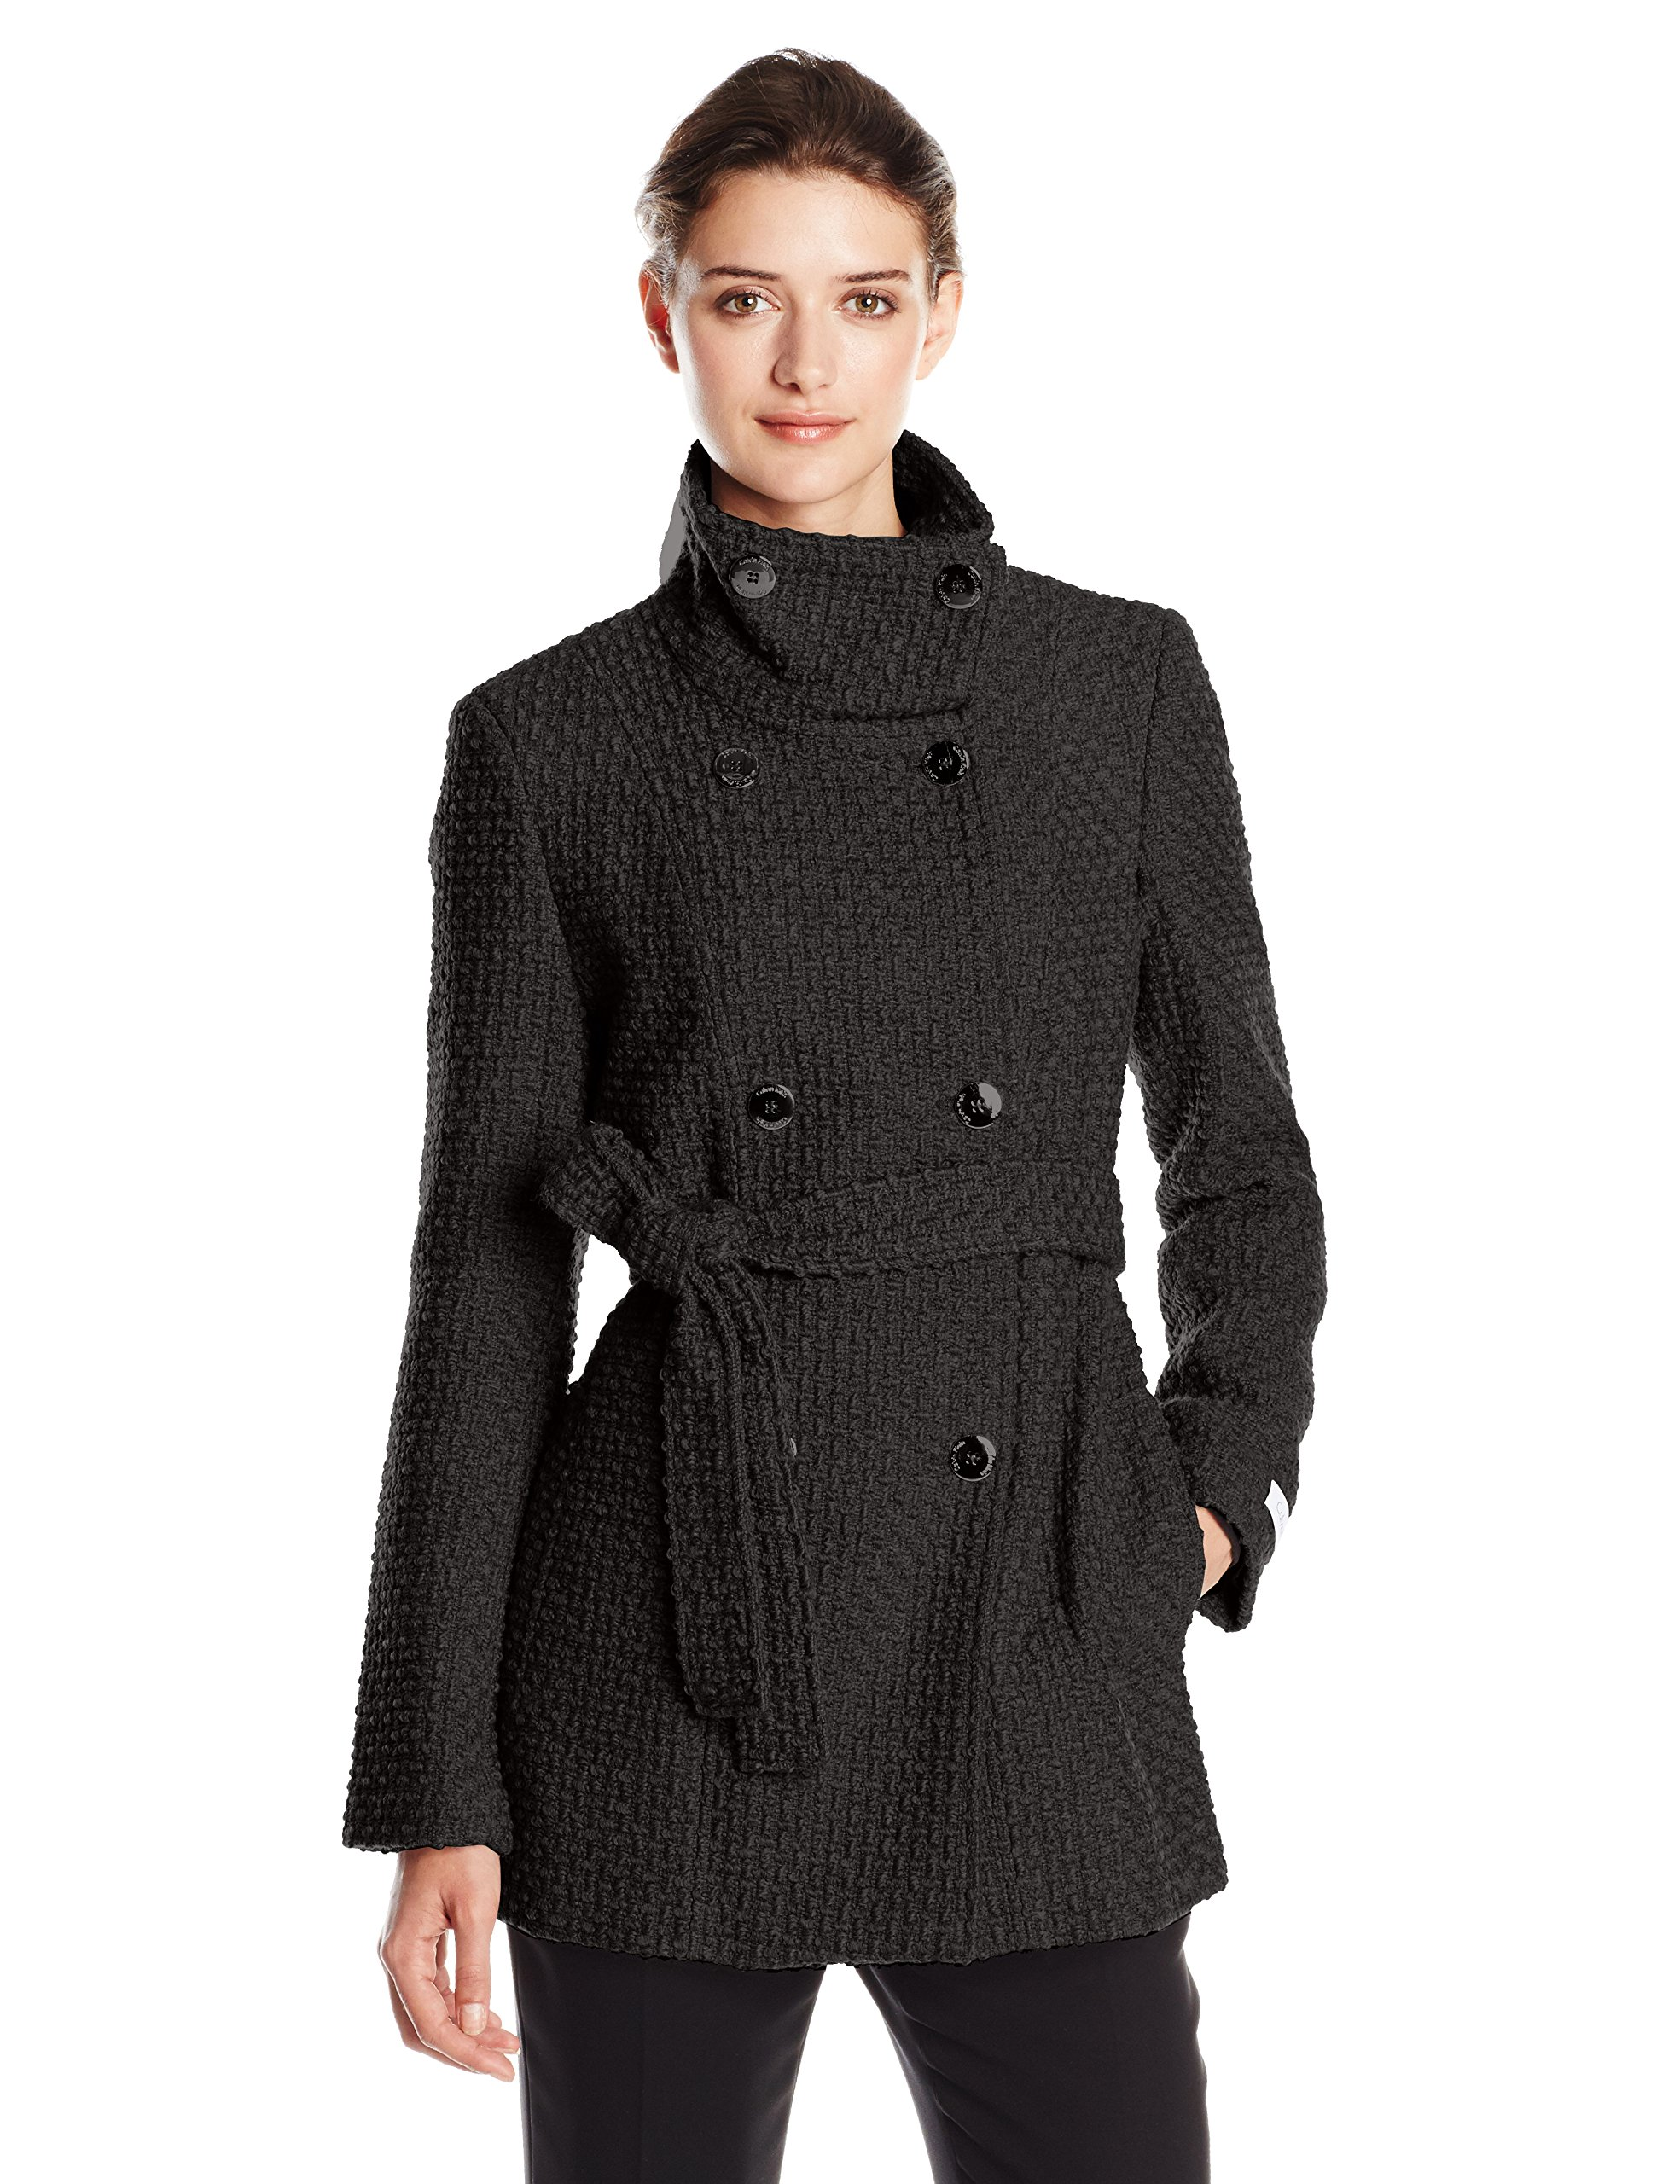 Calvin Klein Women's Double Breasted Wool Coat with Belt, Black, Large